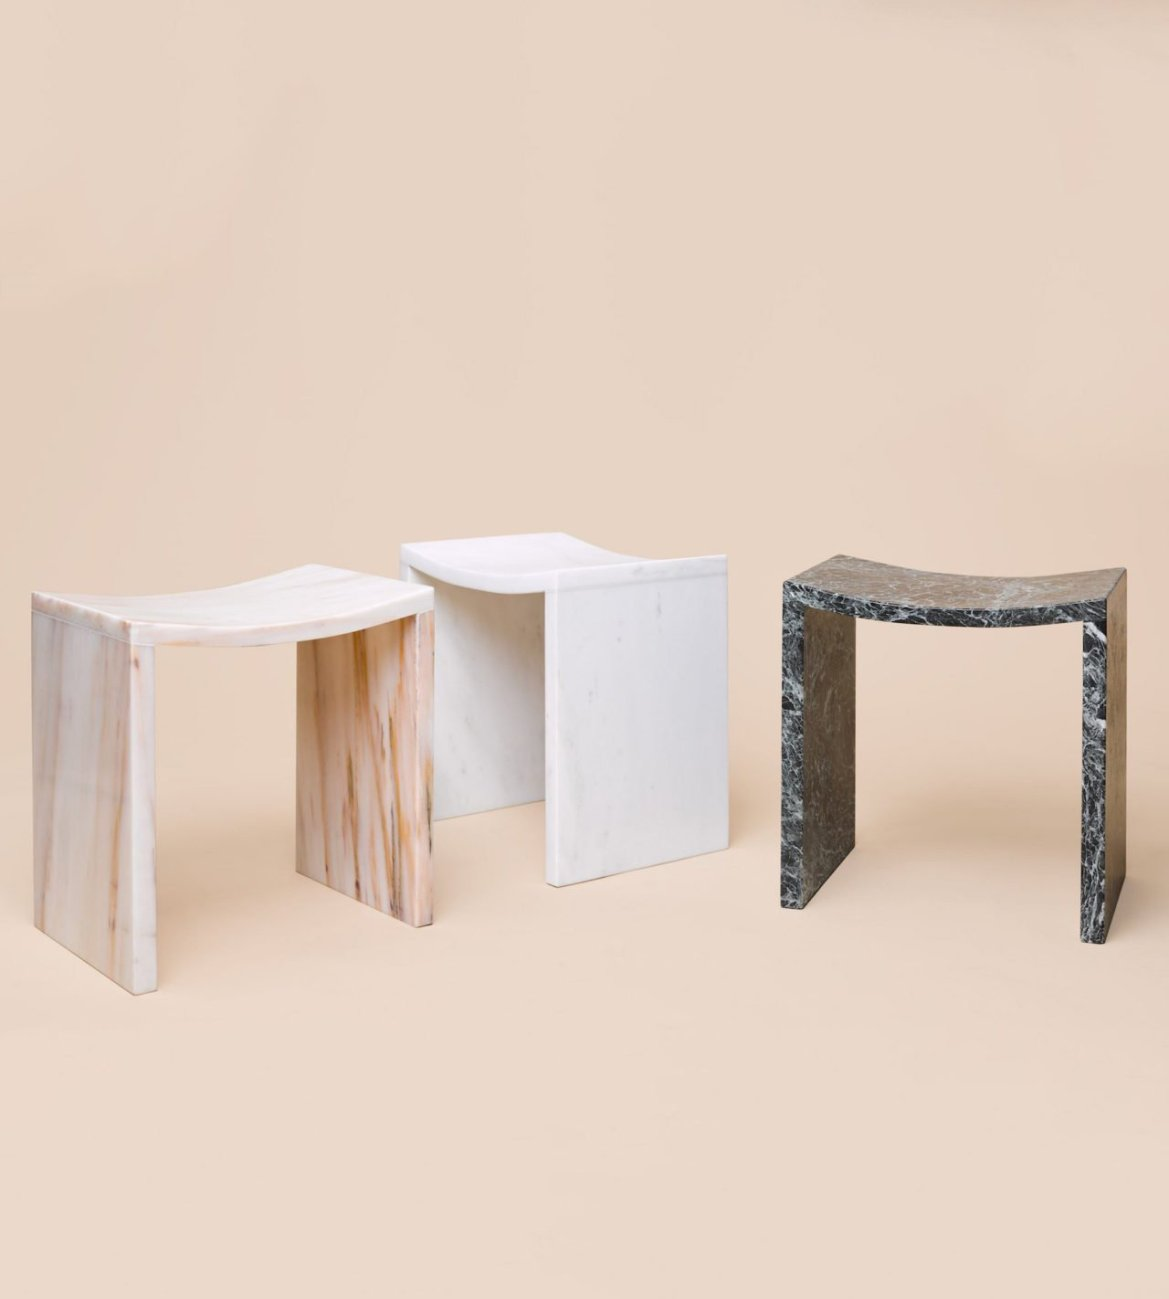 Objects of Common Interest, Marble Stool, New Reflections